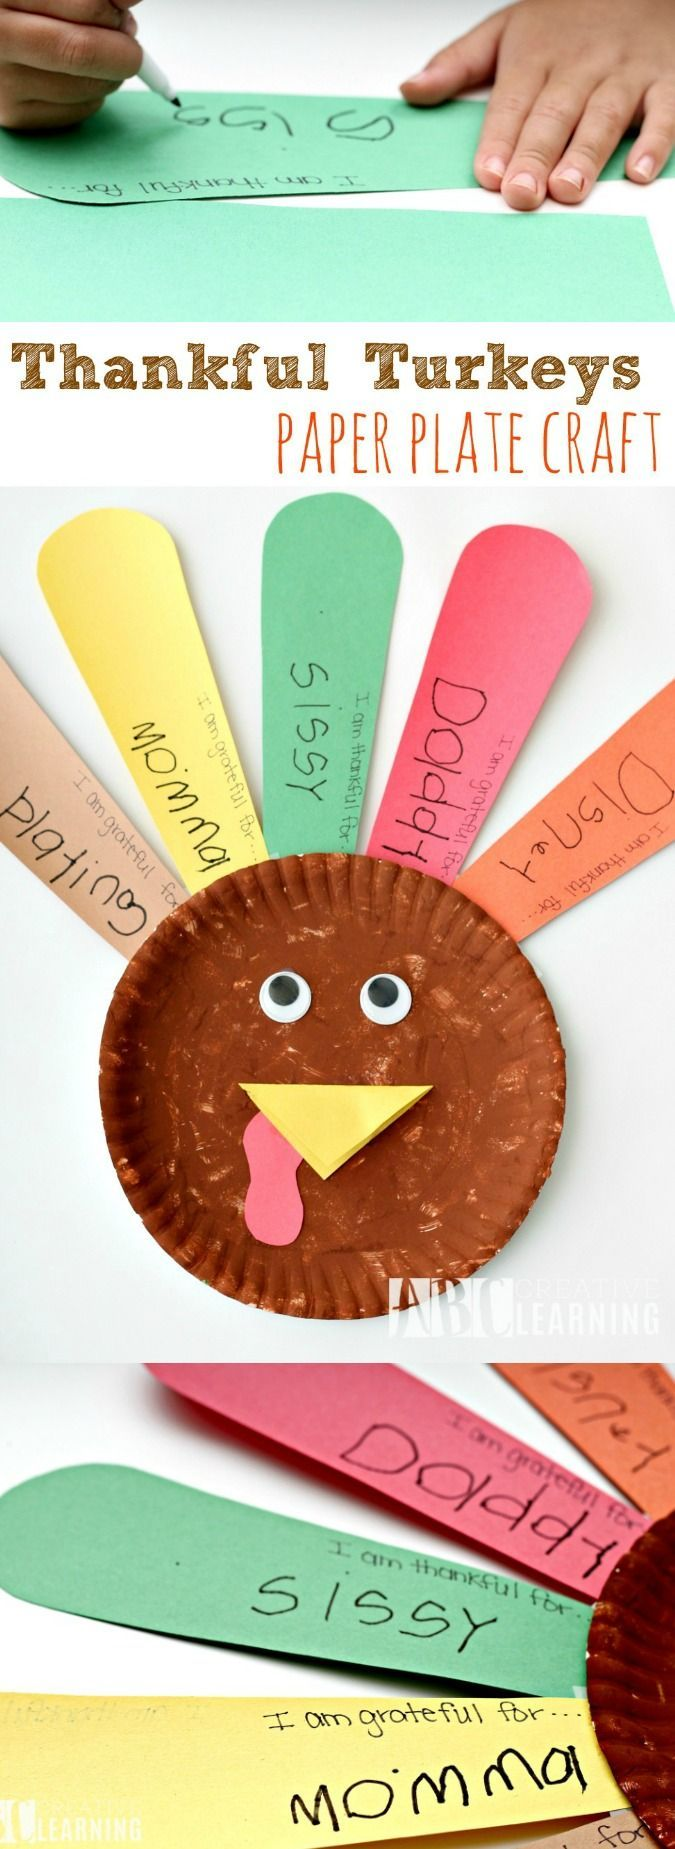 Thankful Turkeys Paper Plate Craft Holiday Fun In The